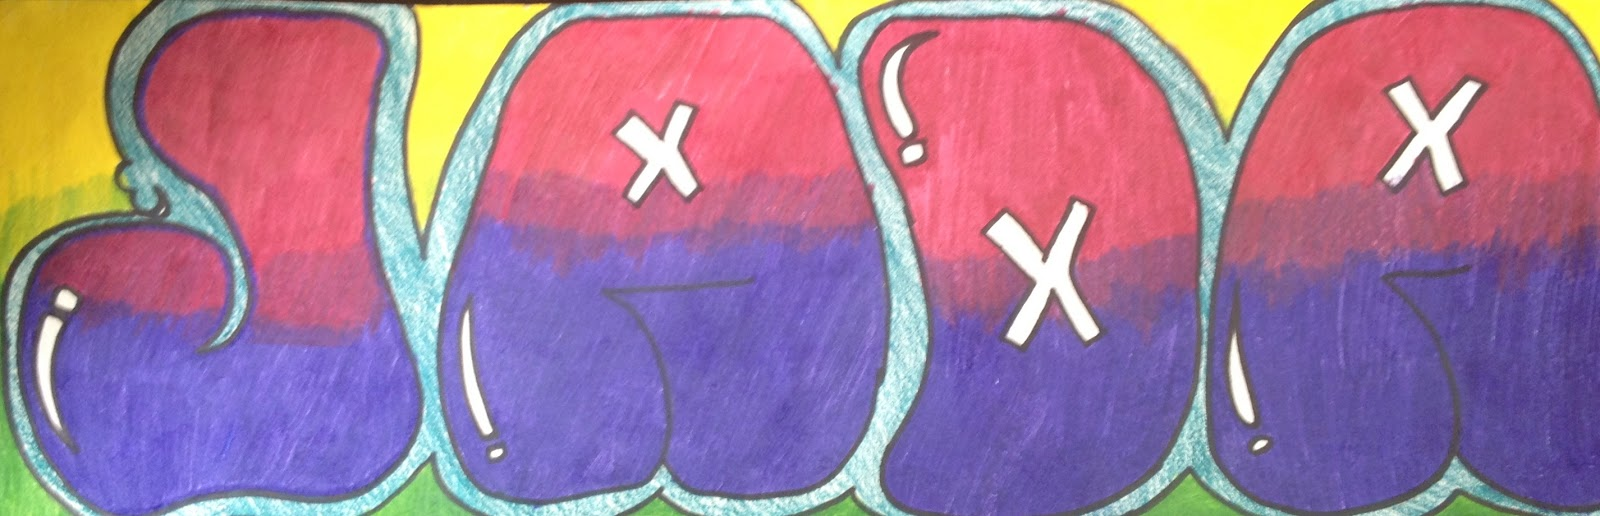 Art at AMY Northwest: Cycle 4: 8th Grade - Graffiti Letter Name Designs